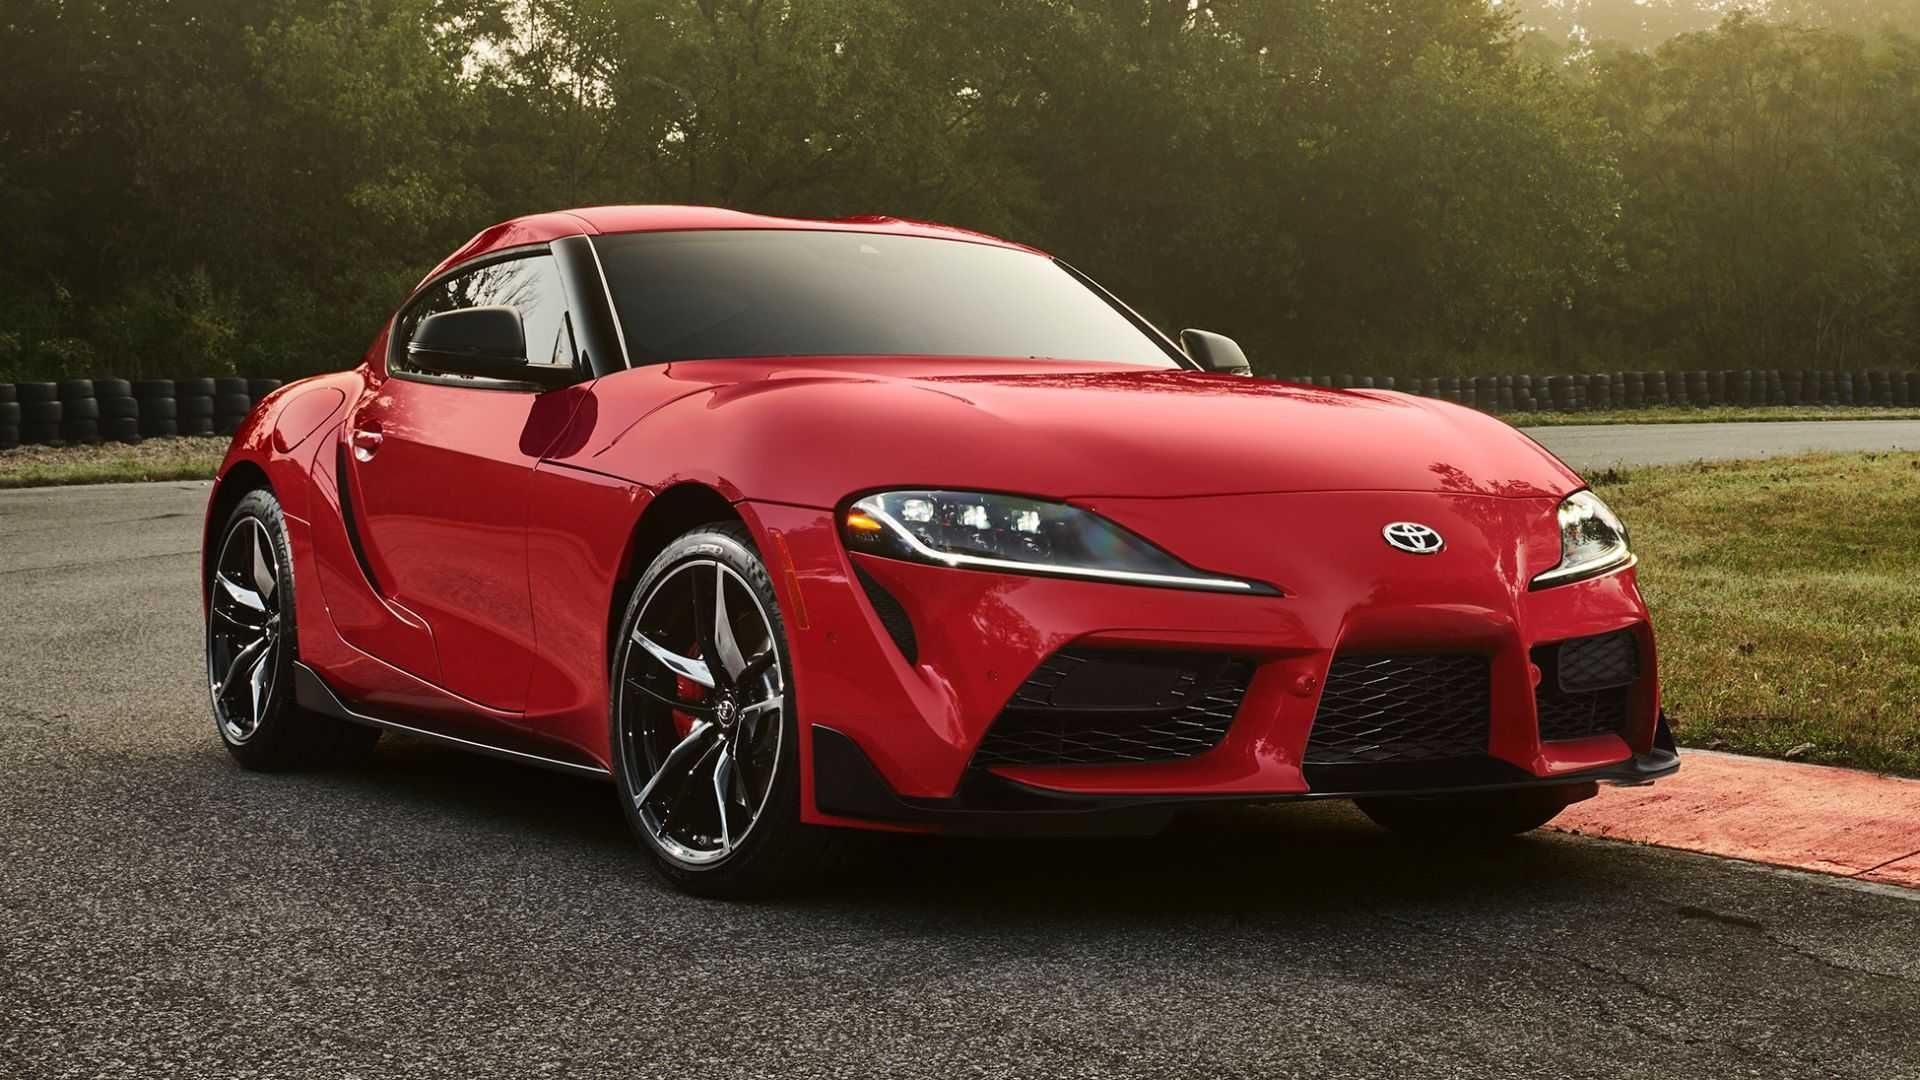 After 21 Years Toyota S Iconic Supra Is Back But Some Say The New Sports Car Is Not A Real Supra Because It Was Co Developed With Bmw And Shares Its Platform